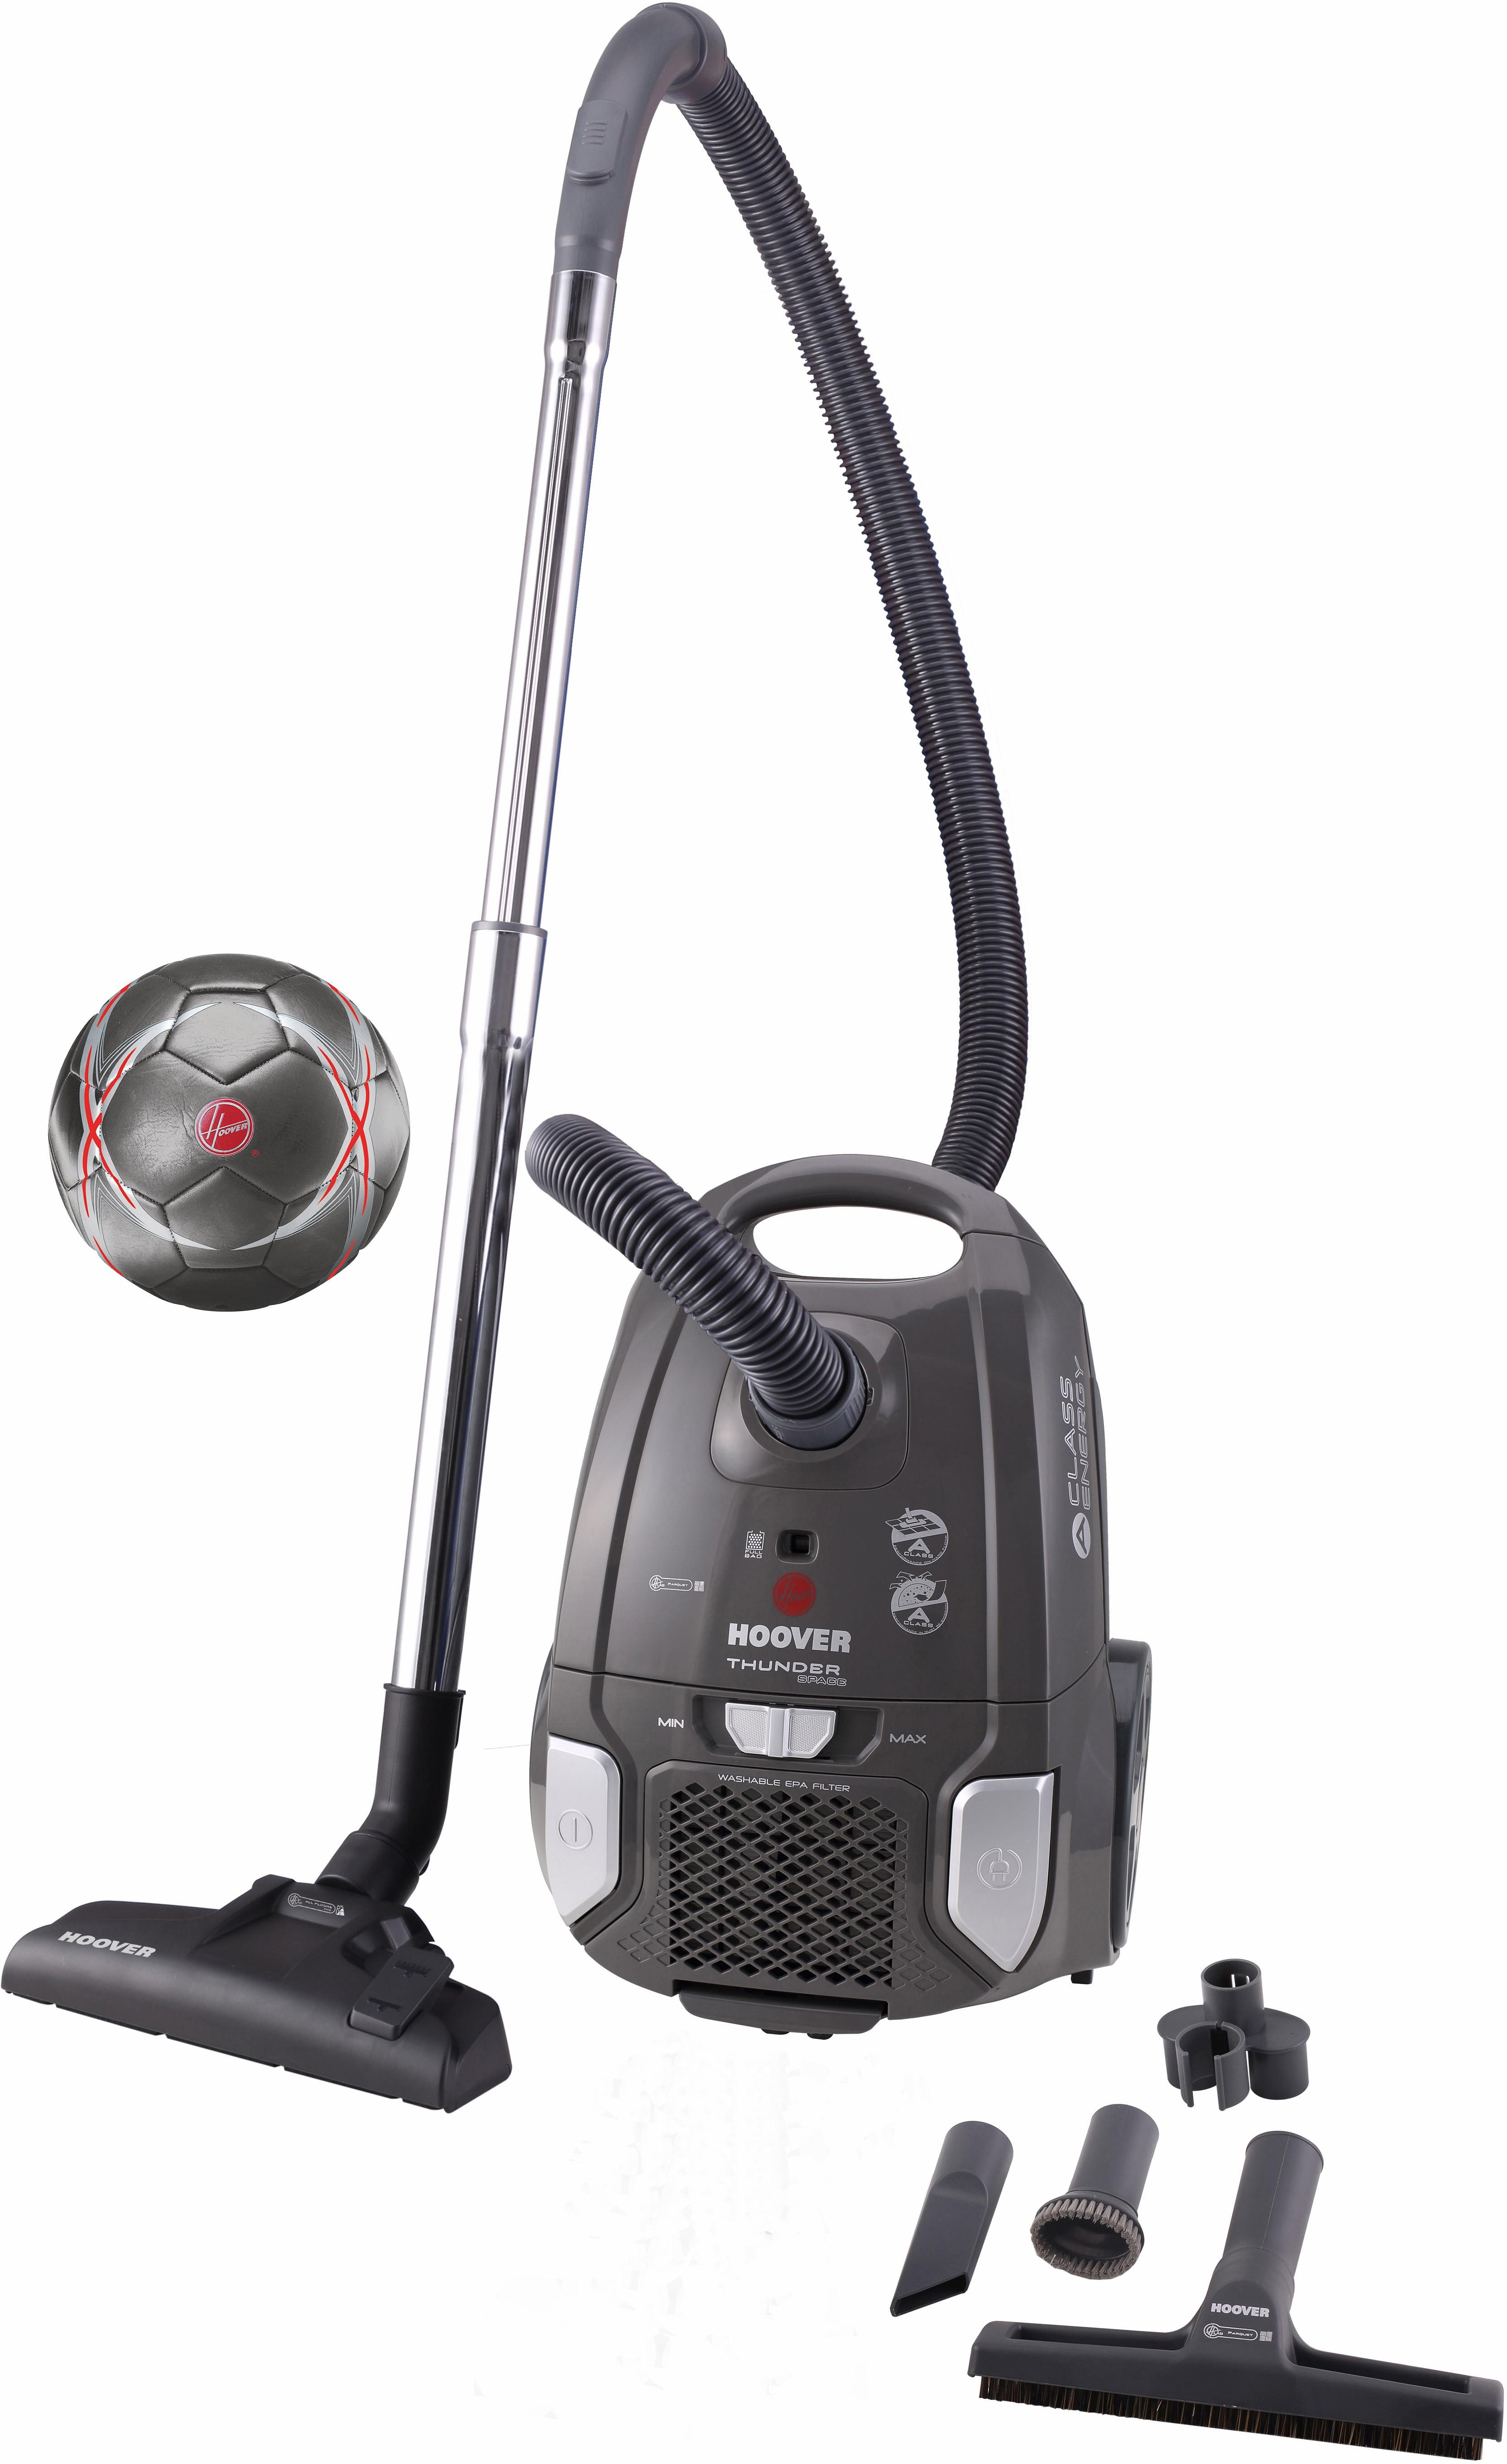 Hoover Bodenstaubsauger Thunder Space TS70_TS2S, Energieklasse A, schwarz / silber